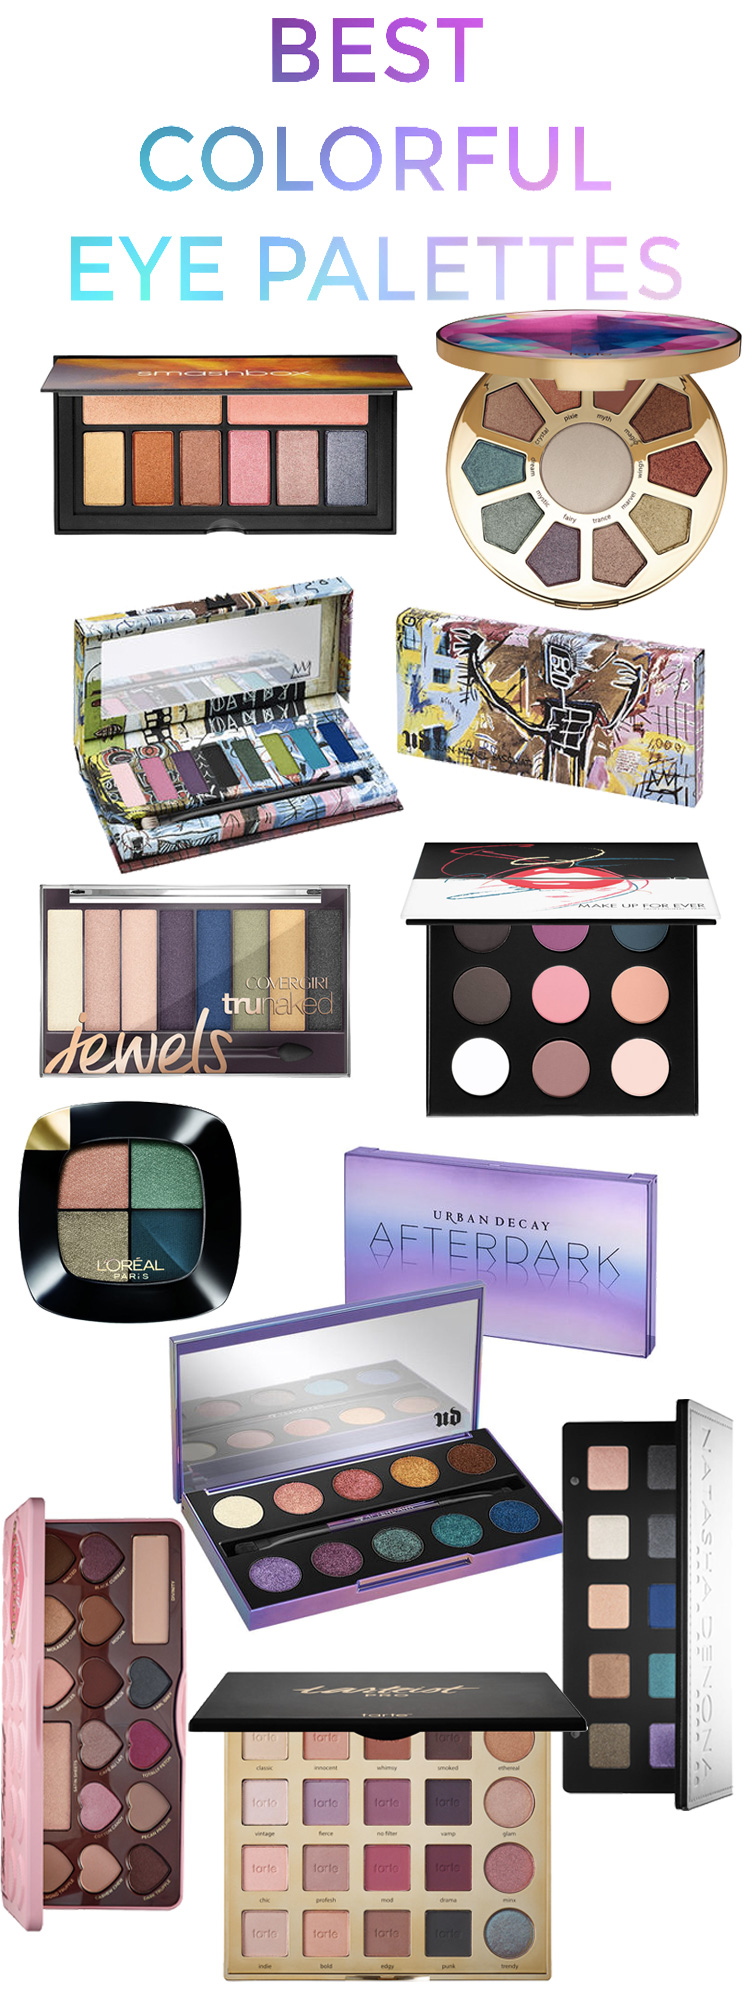 Best Colorful Eye Palettes